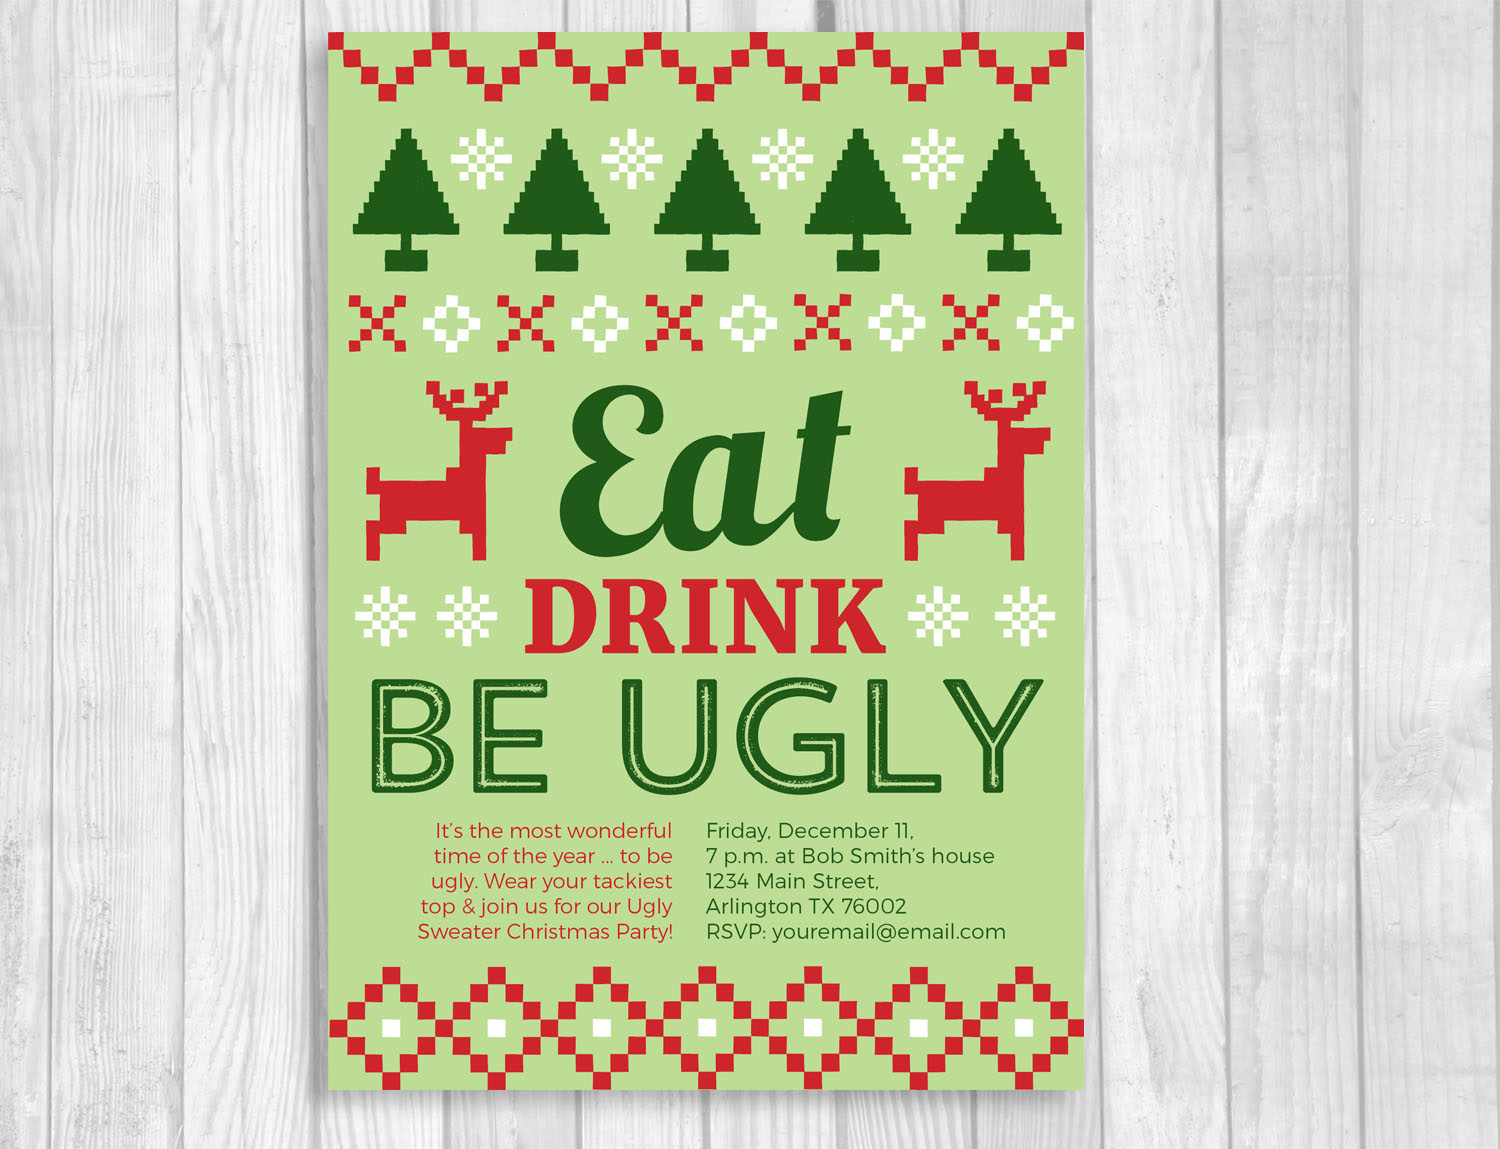 Weddings By Susan Ugly Christmas Sweater Party Printable Invitation